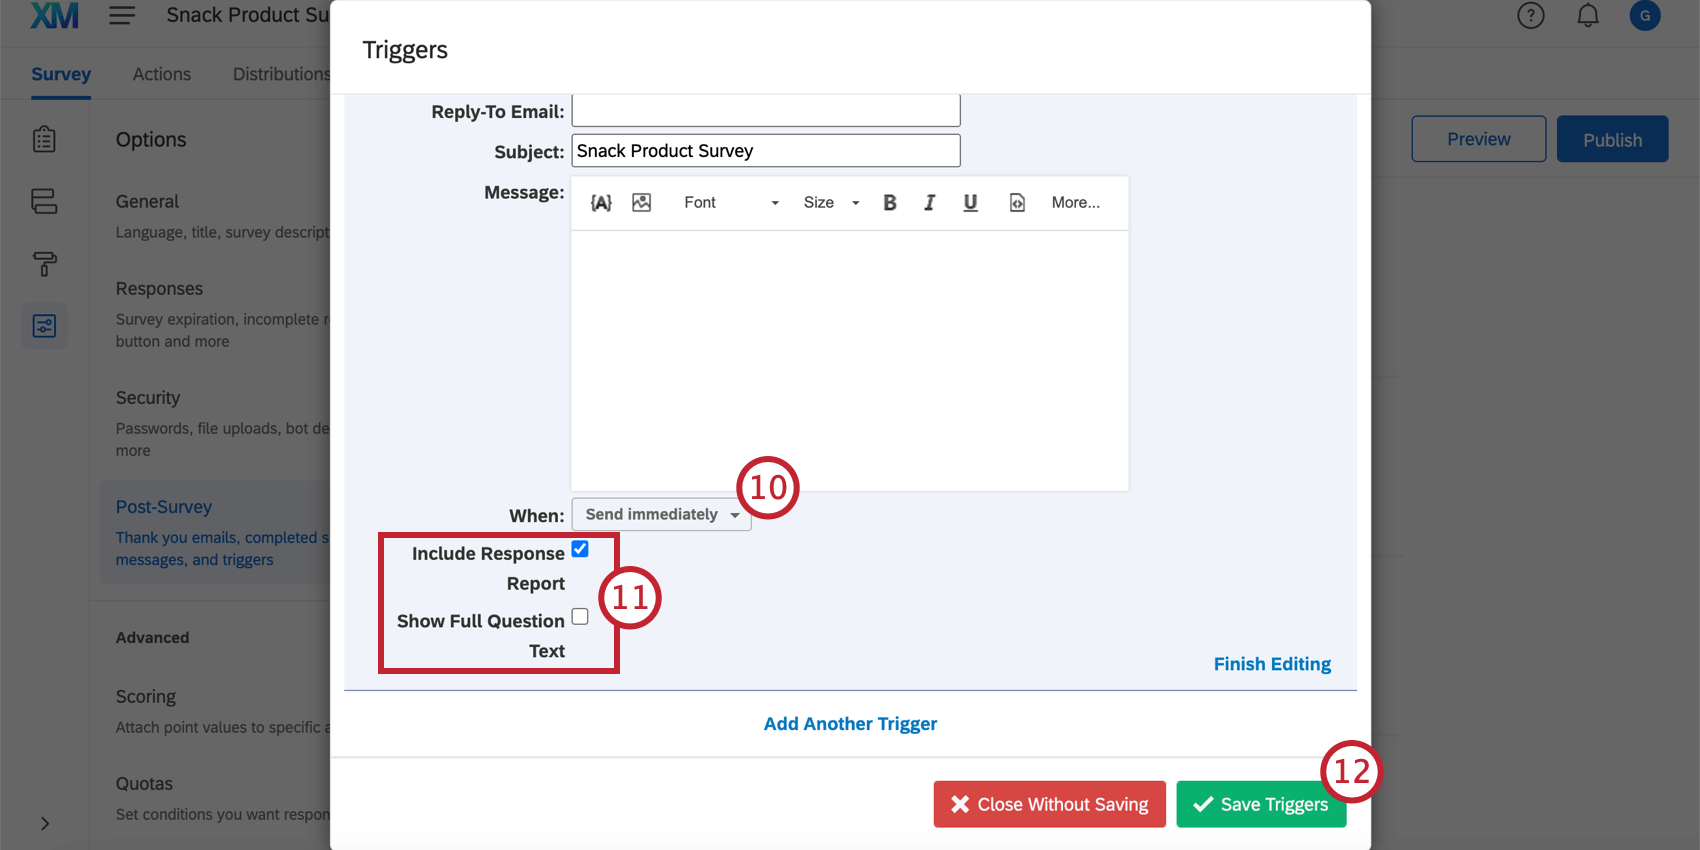 Additional options at the bottom of the email trigger